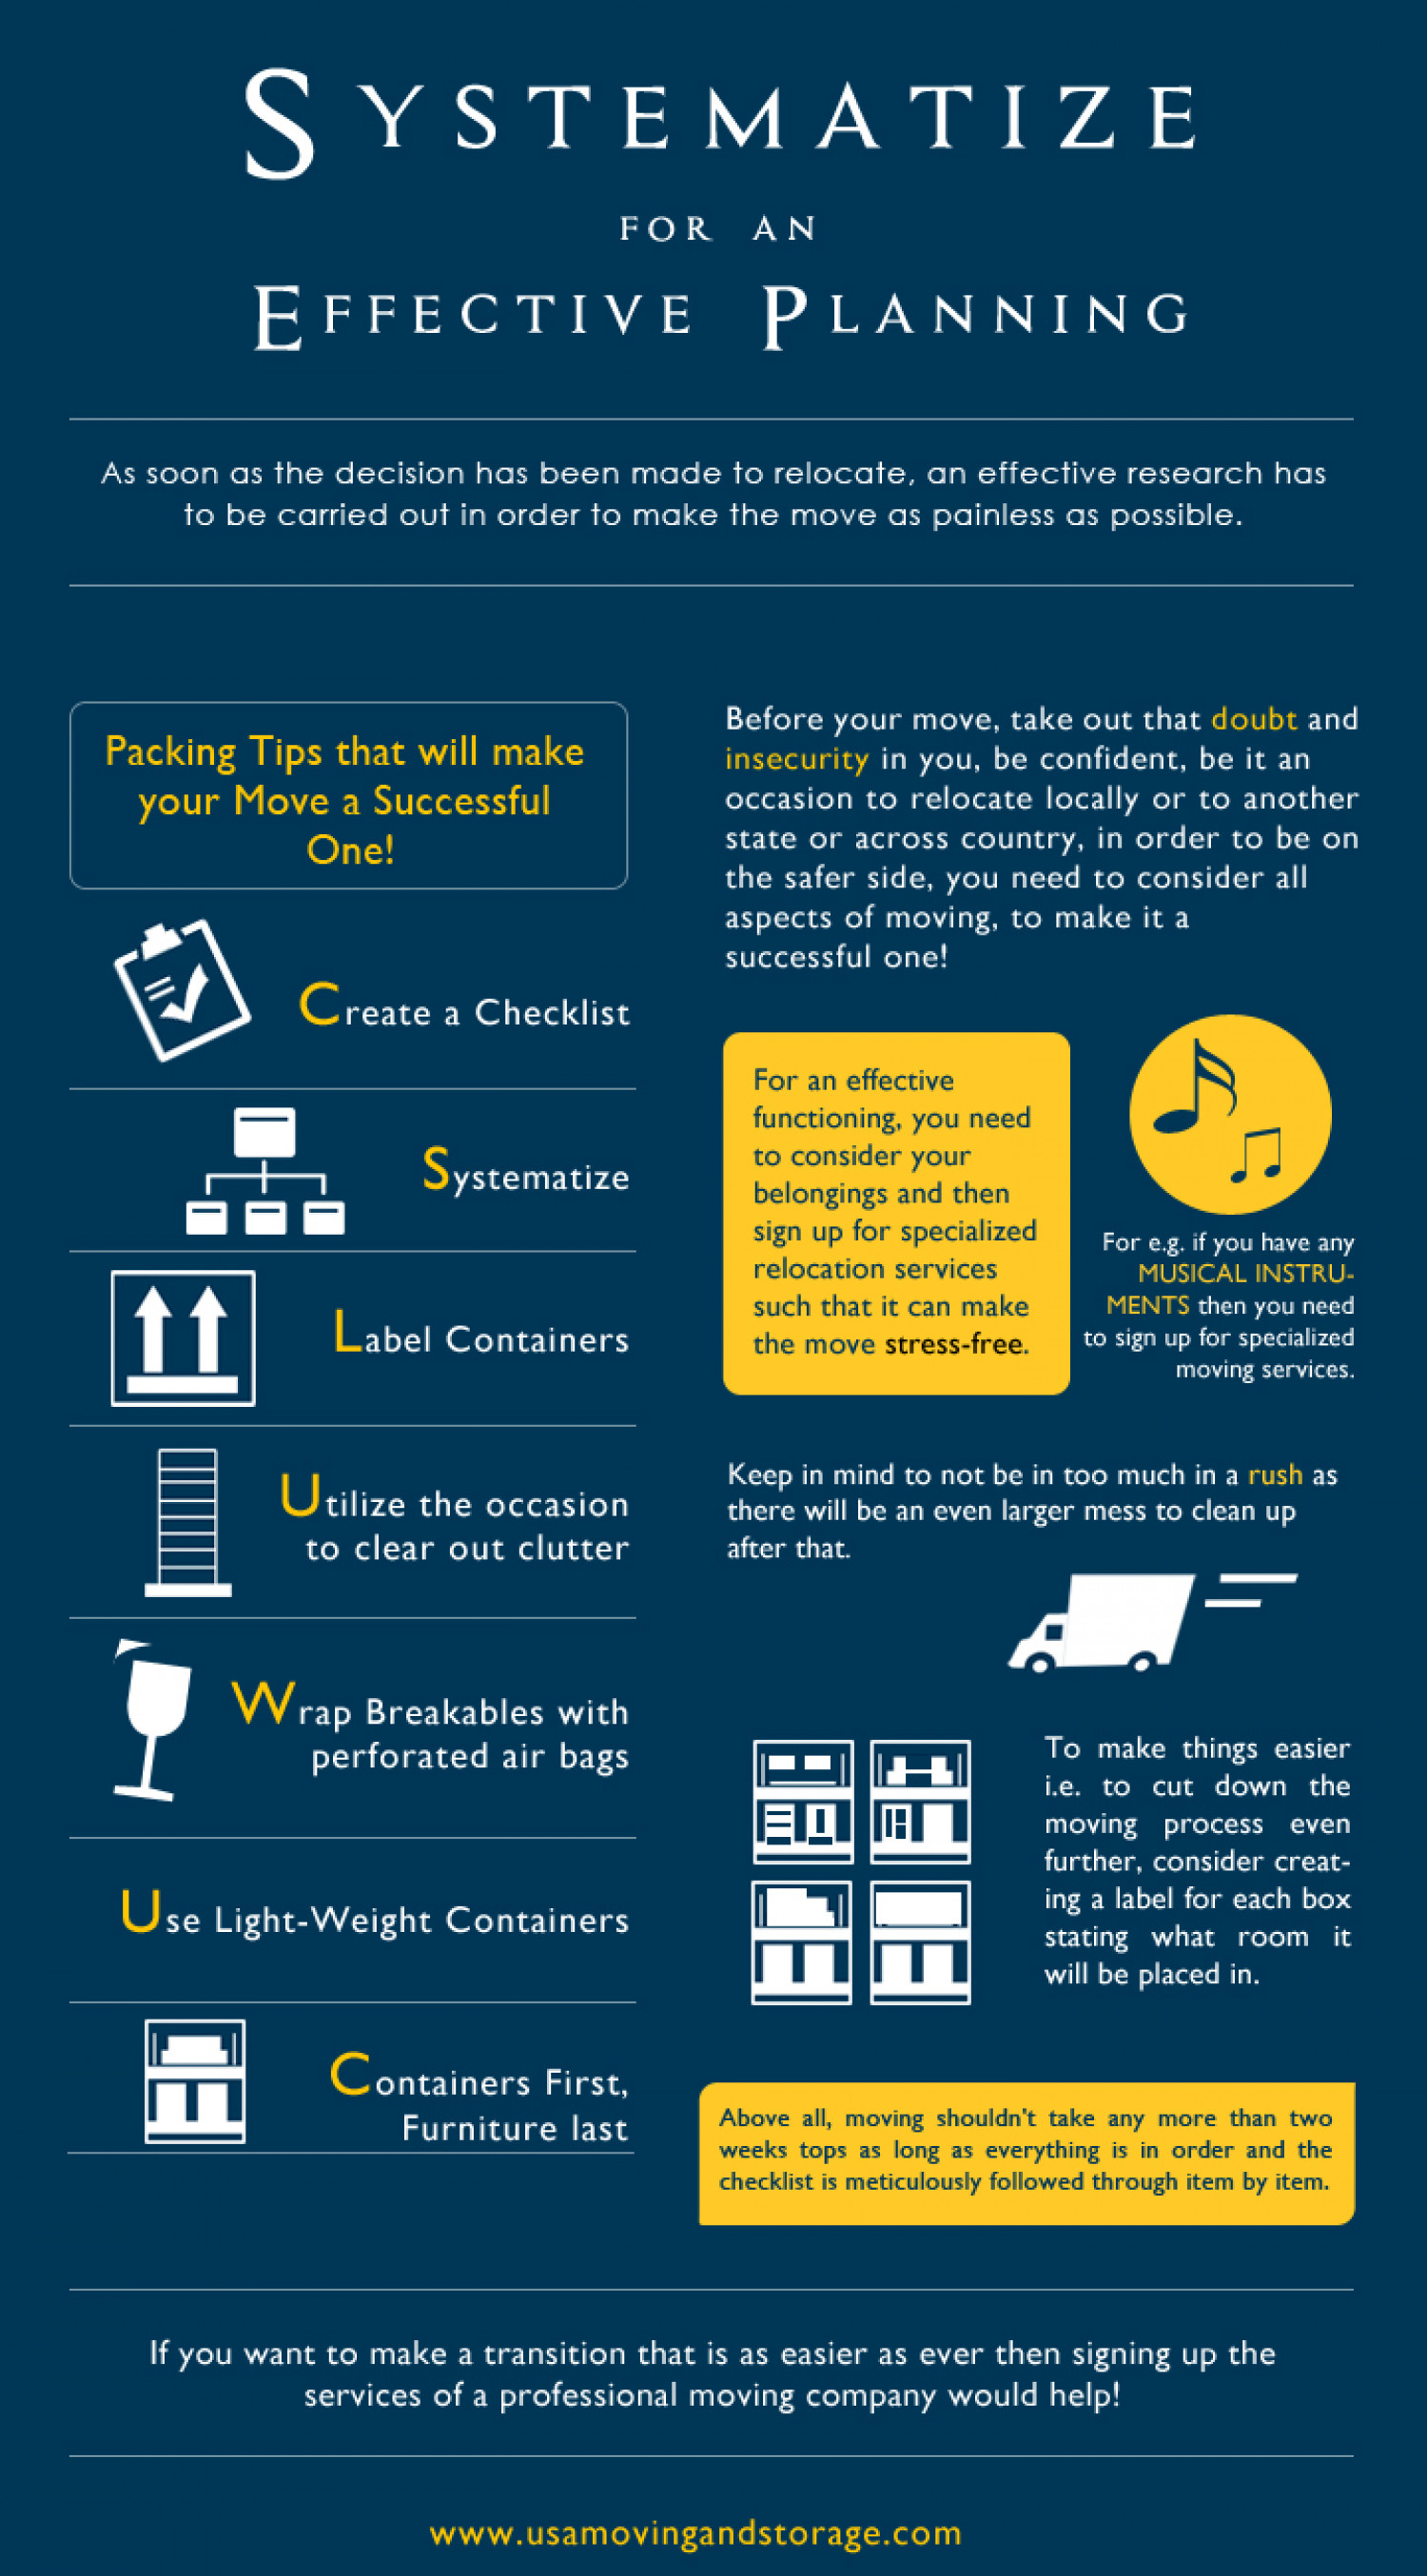 Systematize for an effective planning Infographic